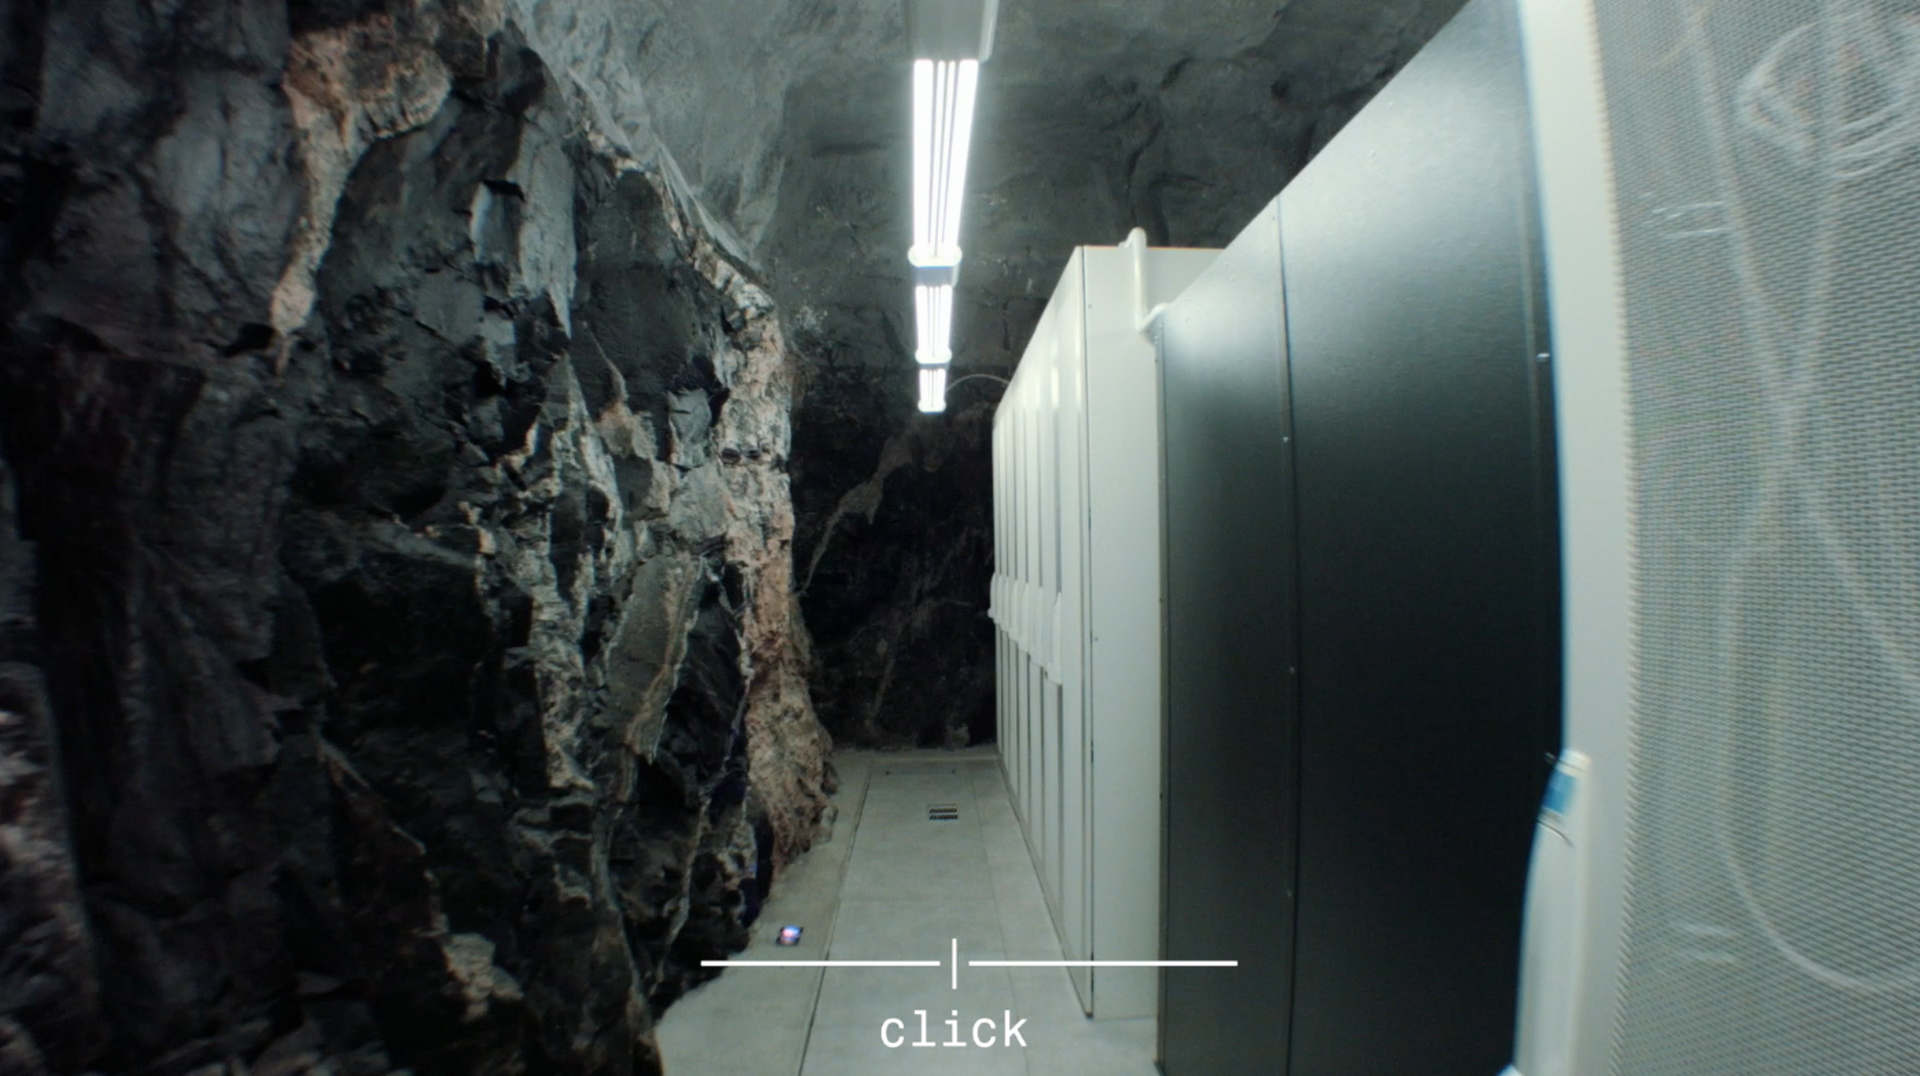 5_Yuri Pattison Colocation Time Displacement_video still_63rd-77th STEPS